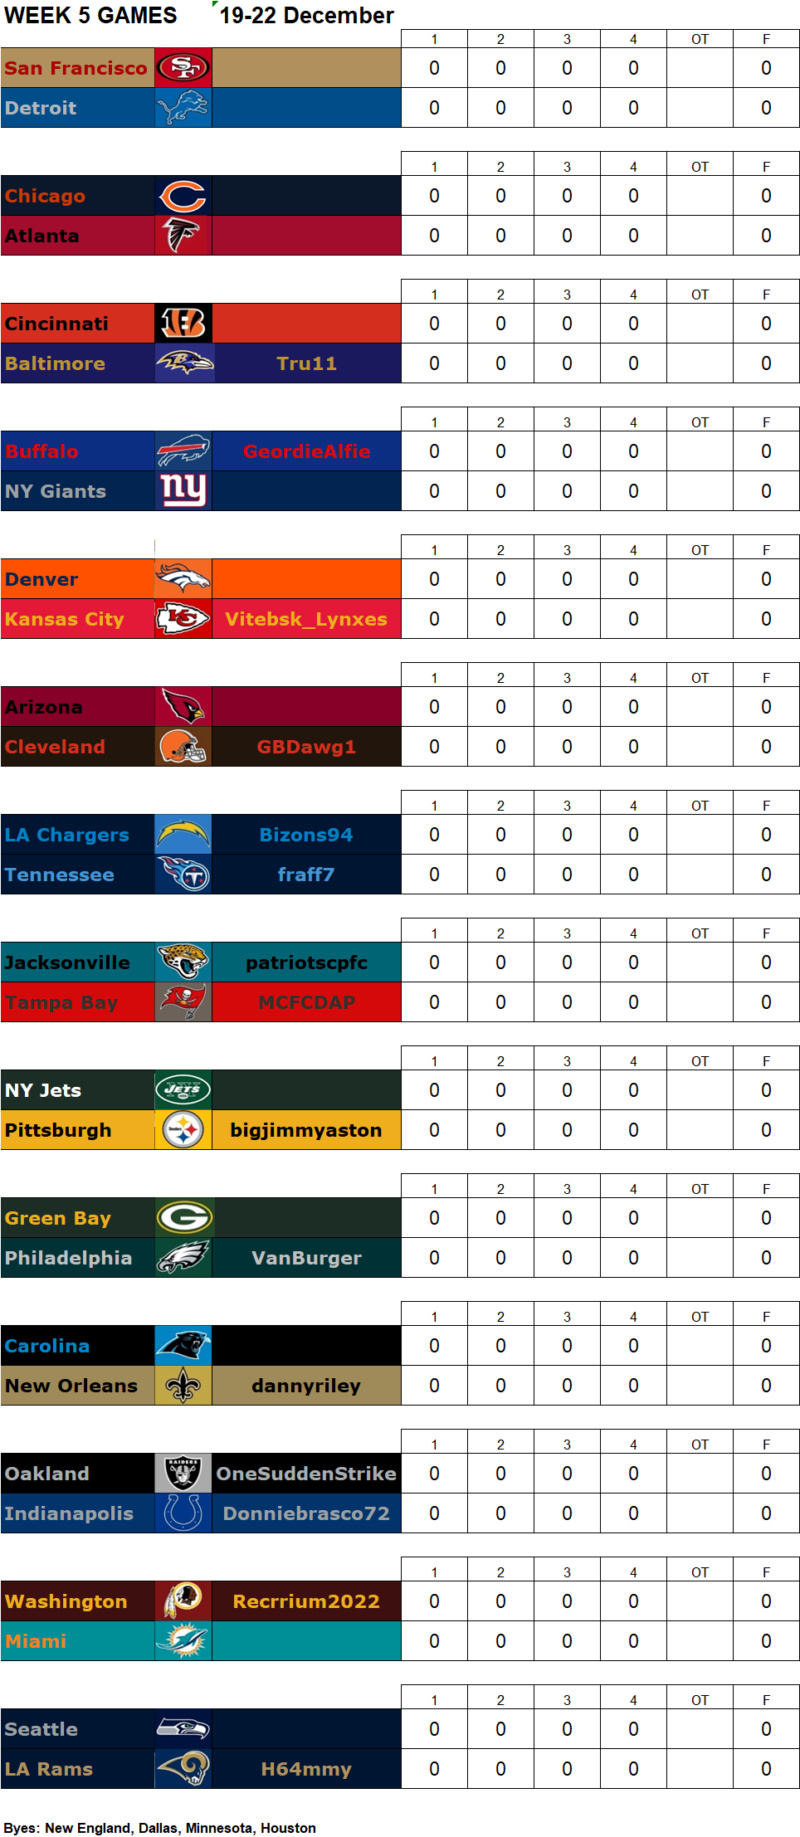 Week 5 Matchups, 19-22 December W5g12